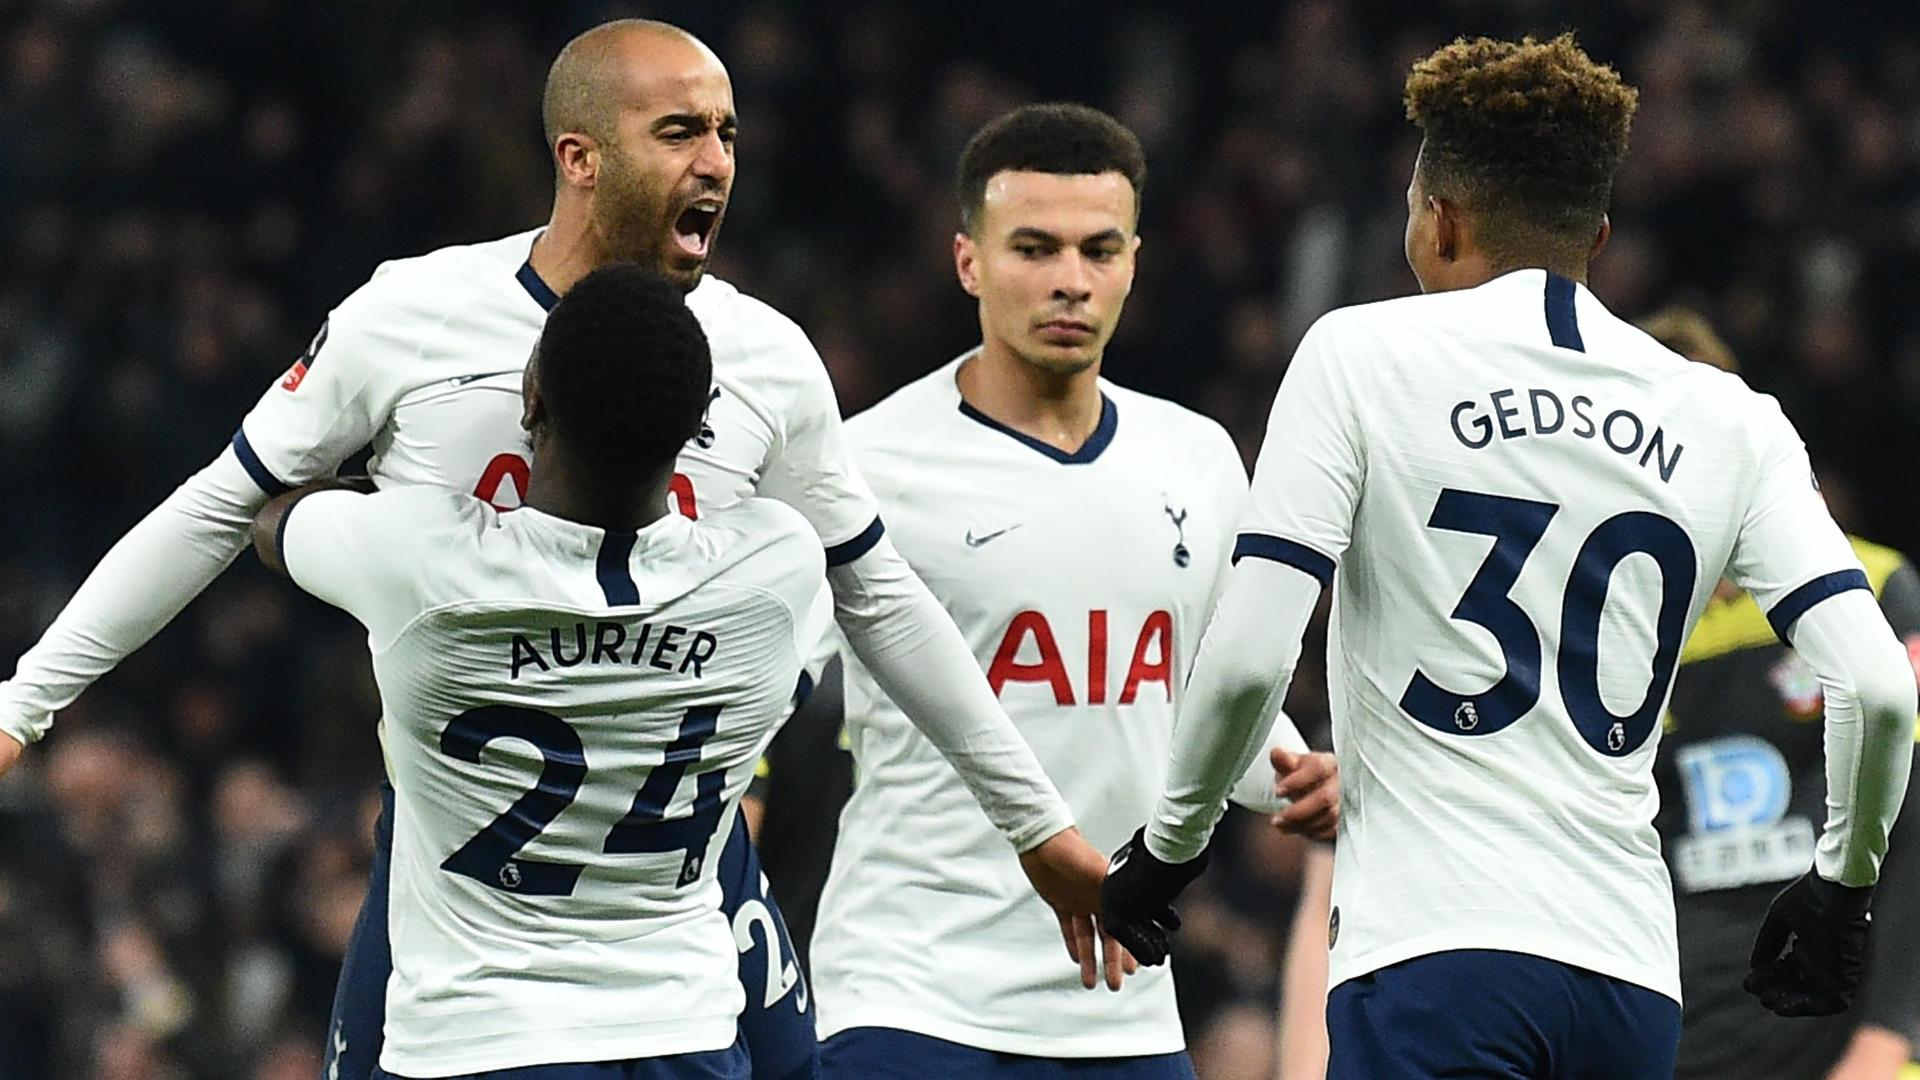 Lucas Moura puts Tottenham back level with Southampton